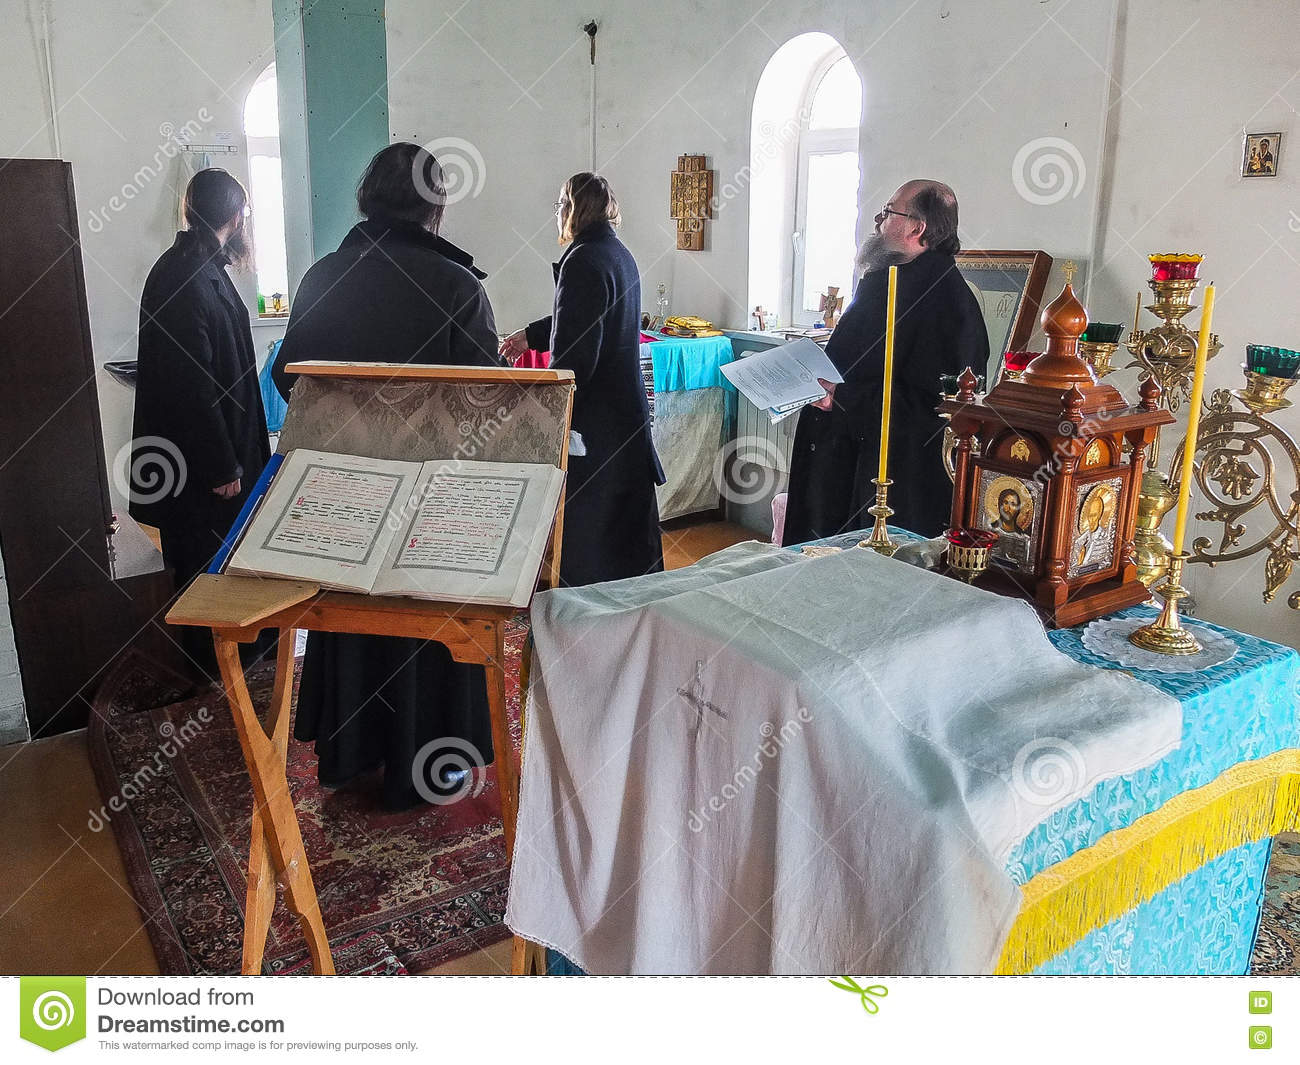 Inspection of the construction of the Church and the Episcopal service in the Kaluga region of Russia.